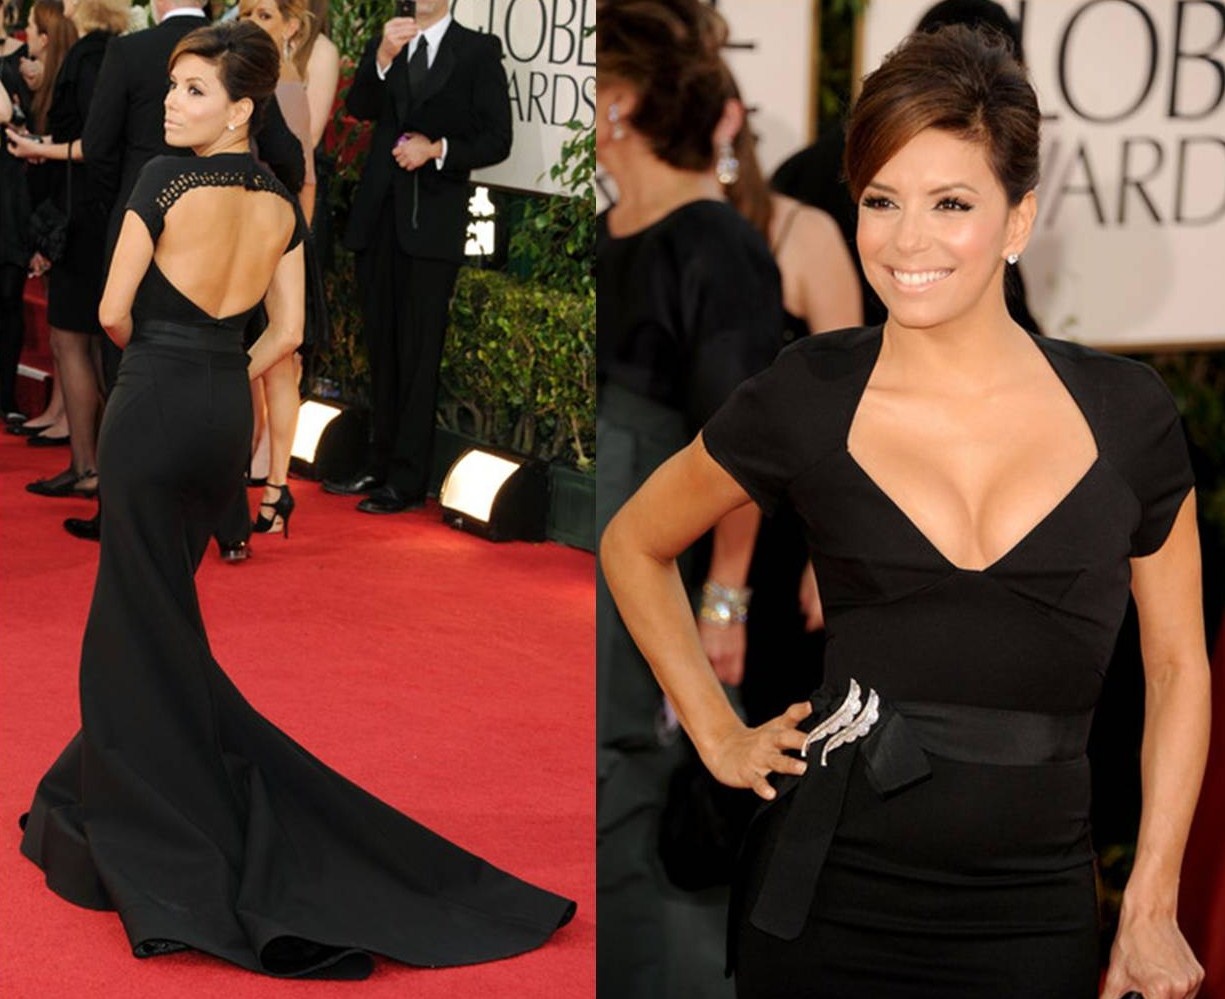 Golden Globes 2013: Fake Fashion Not